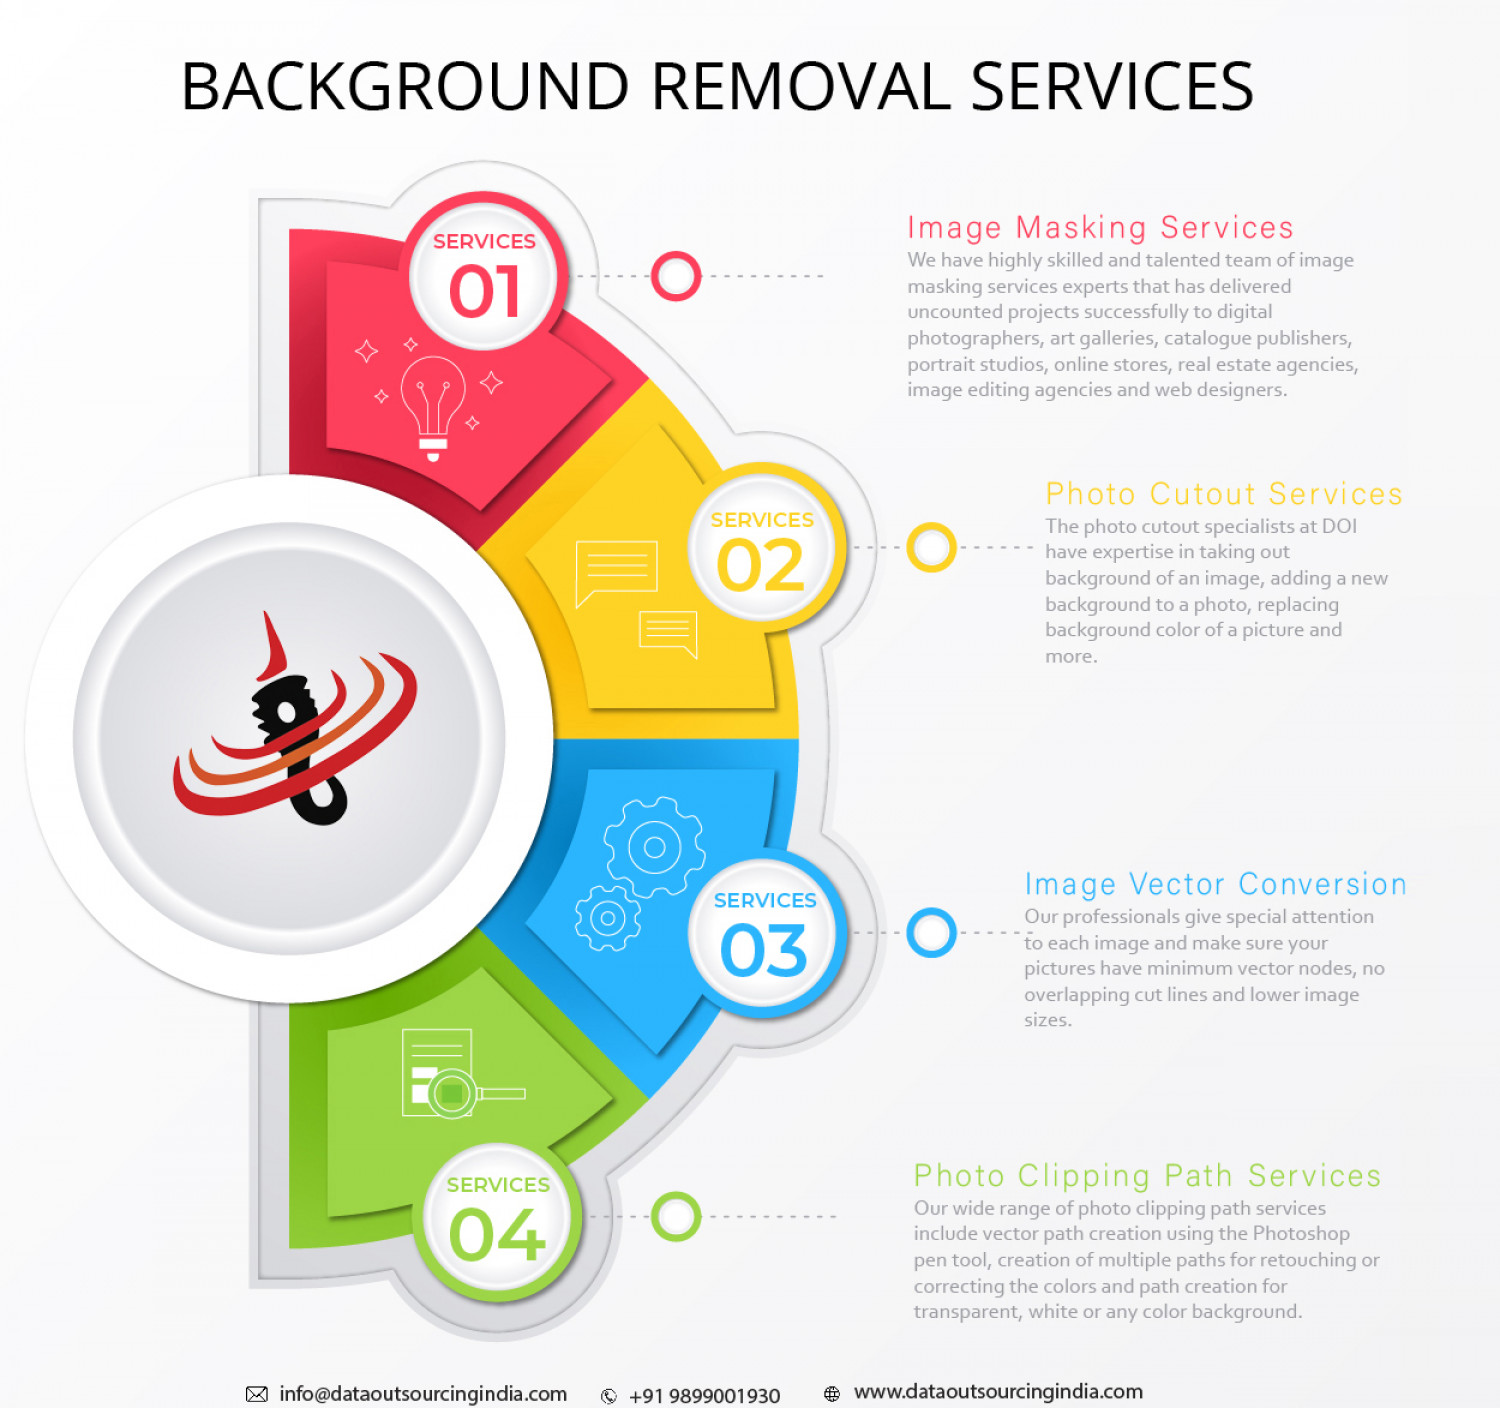 Outsource Image Background Removal Services, Background Removal Company in India Infographic